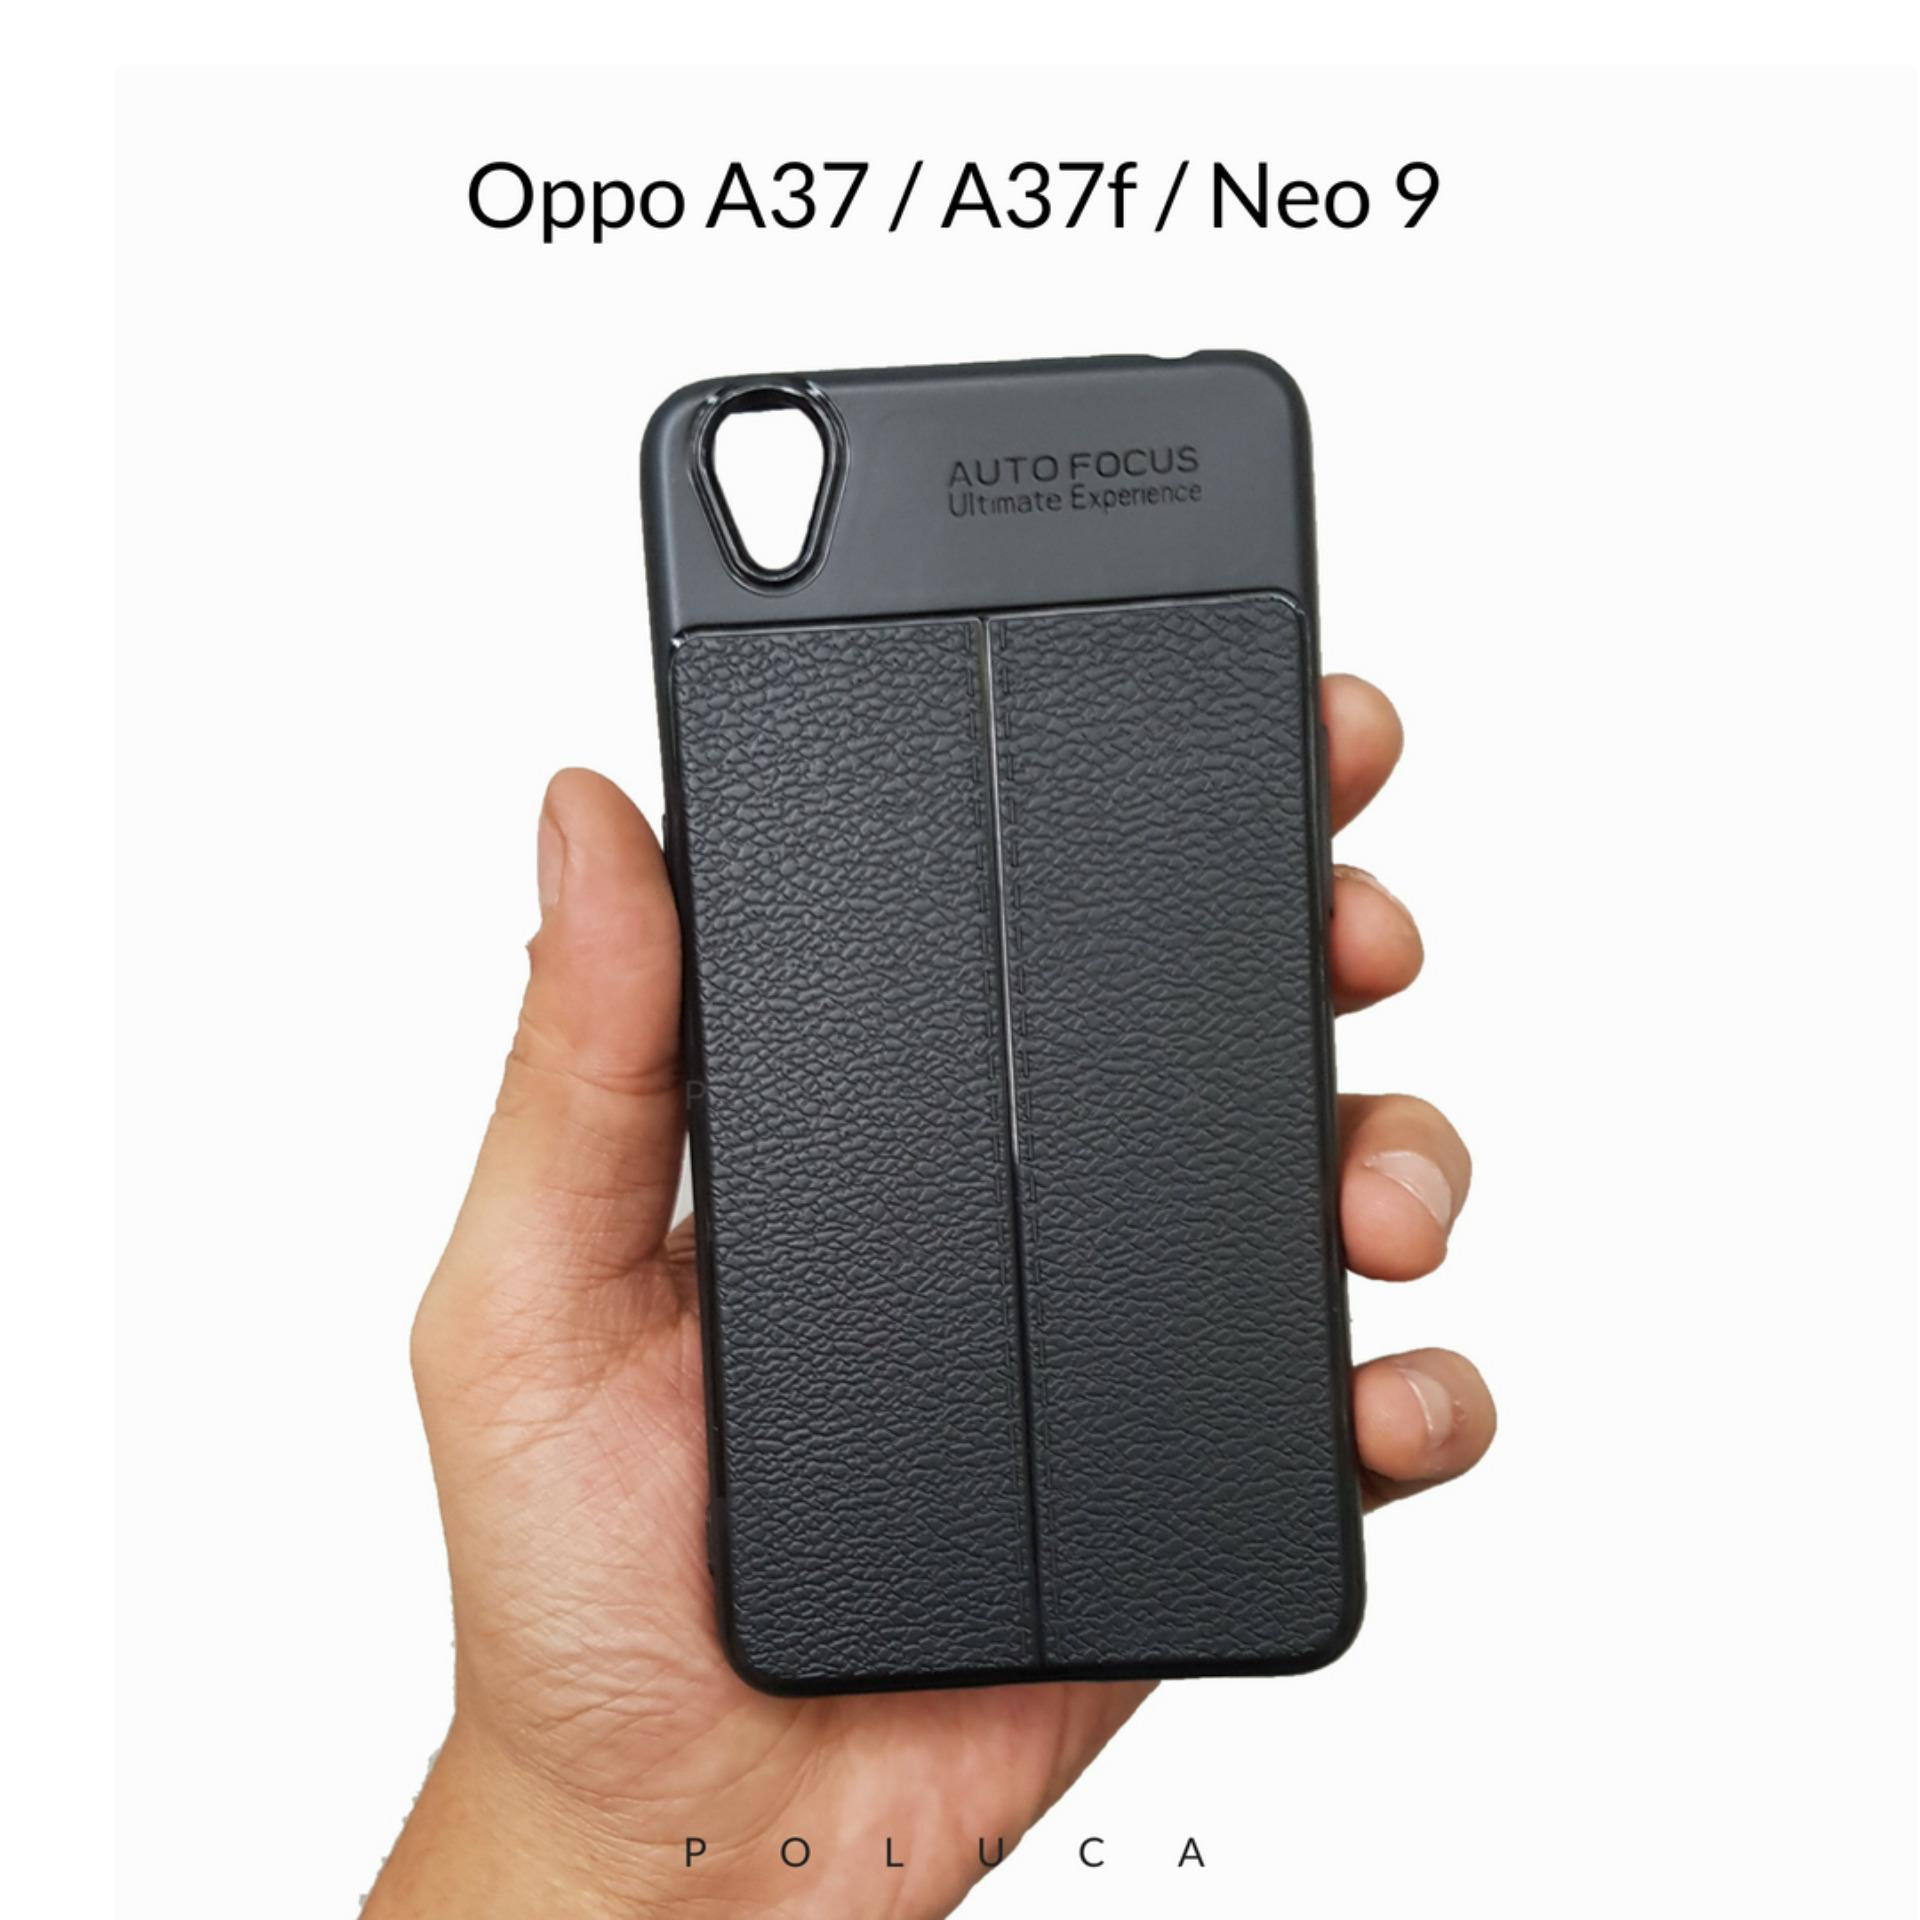 Poluca Luxury Case For Oppo A37 / A37f / Neo 9 Ultimate Experience TPU Leather Autofocus